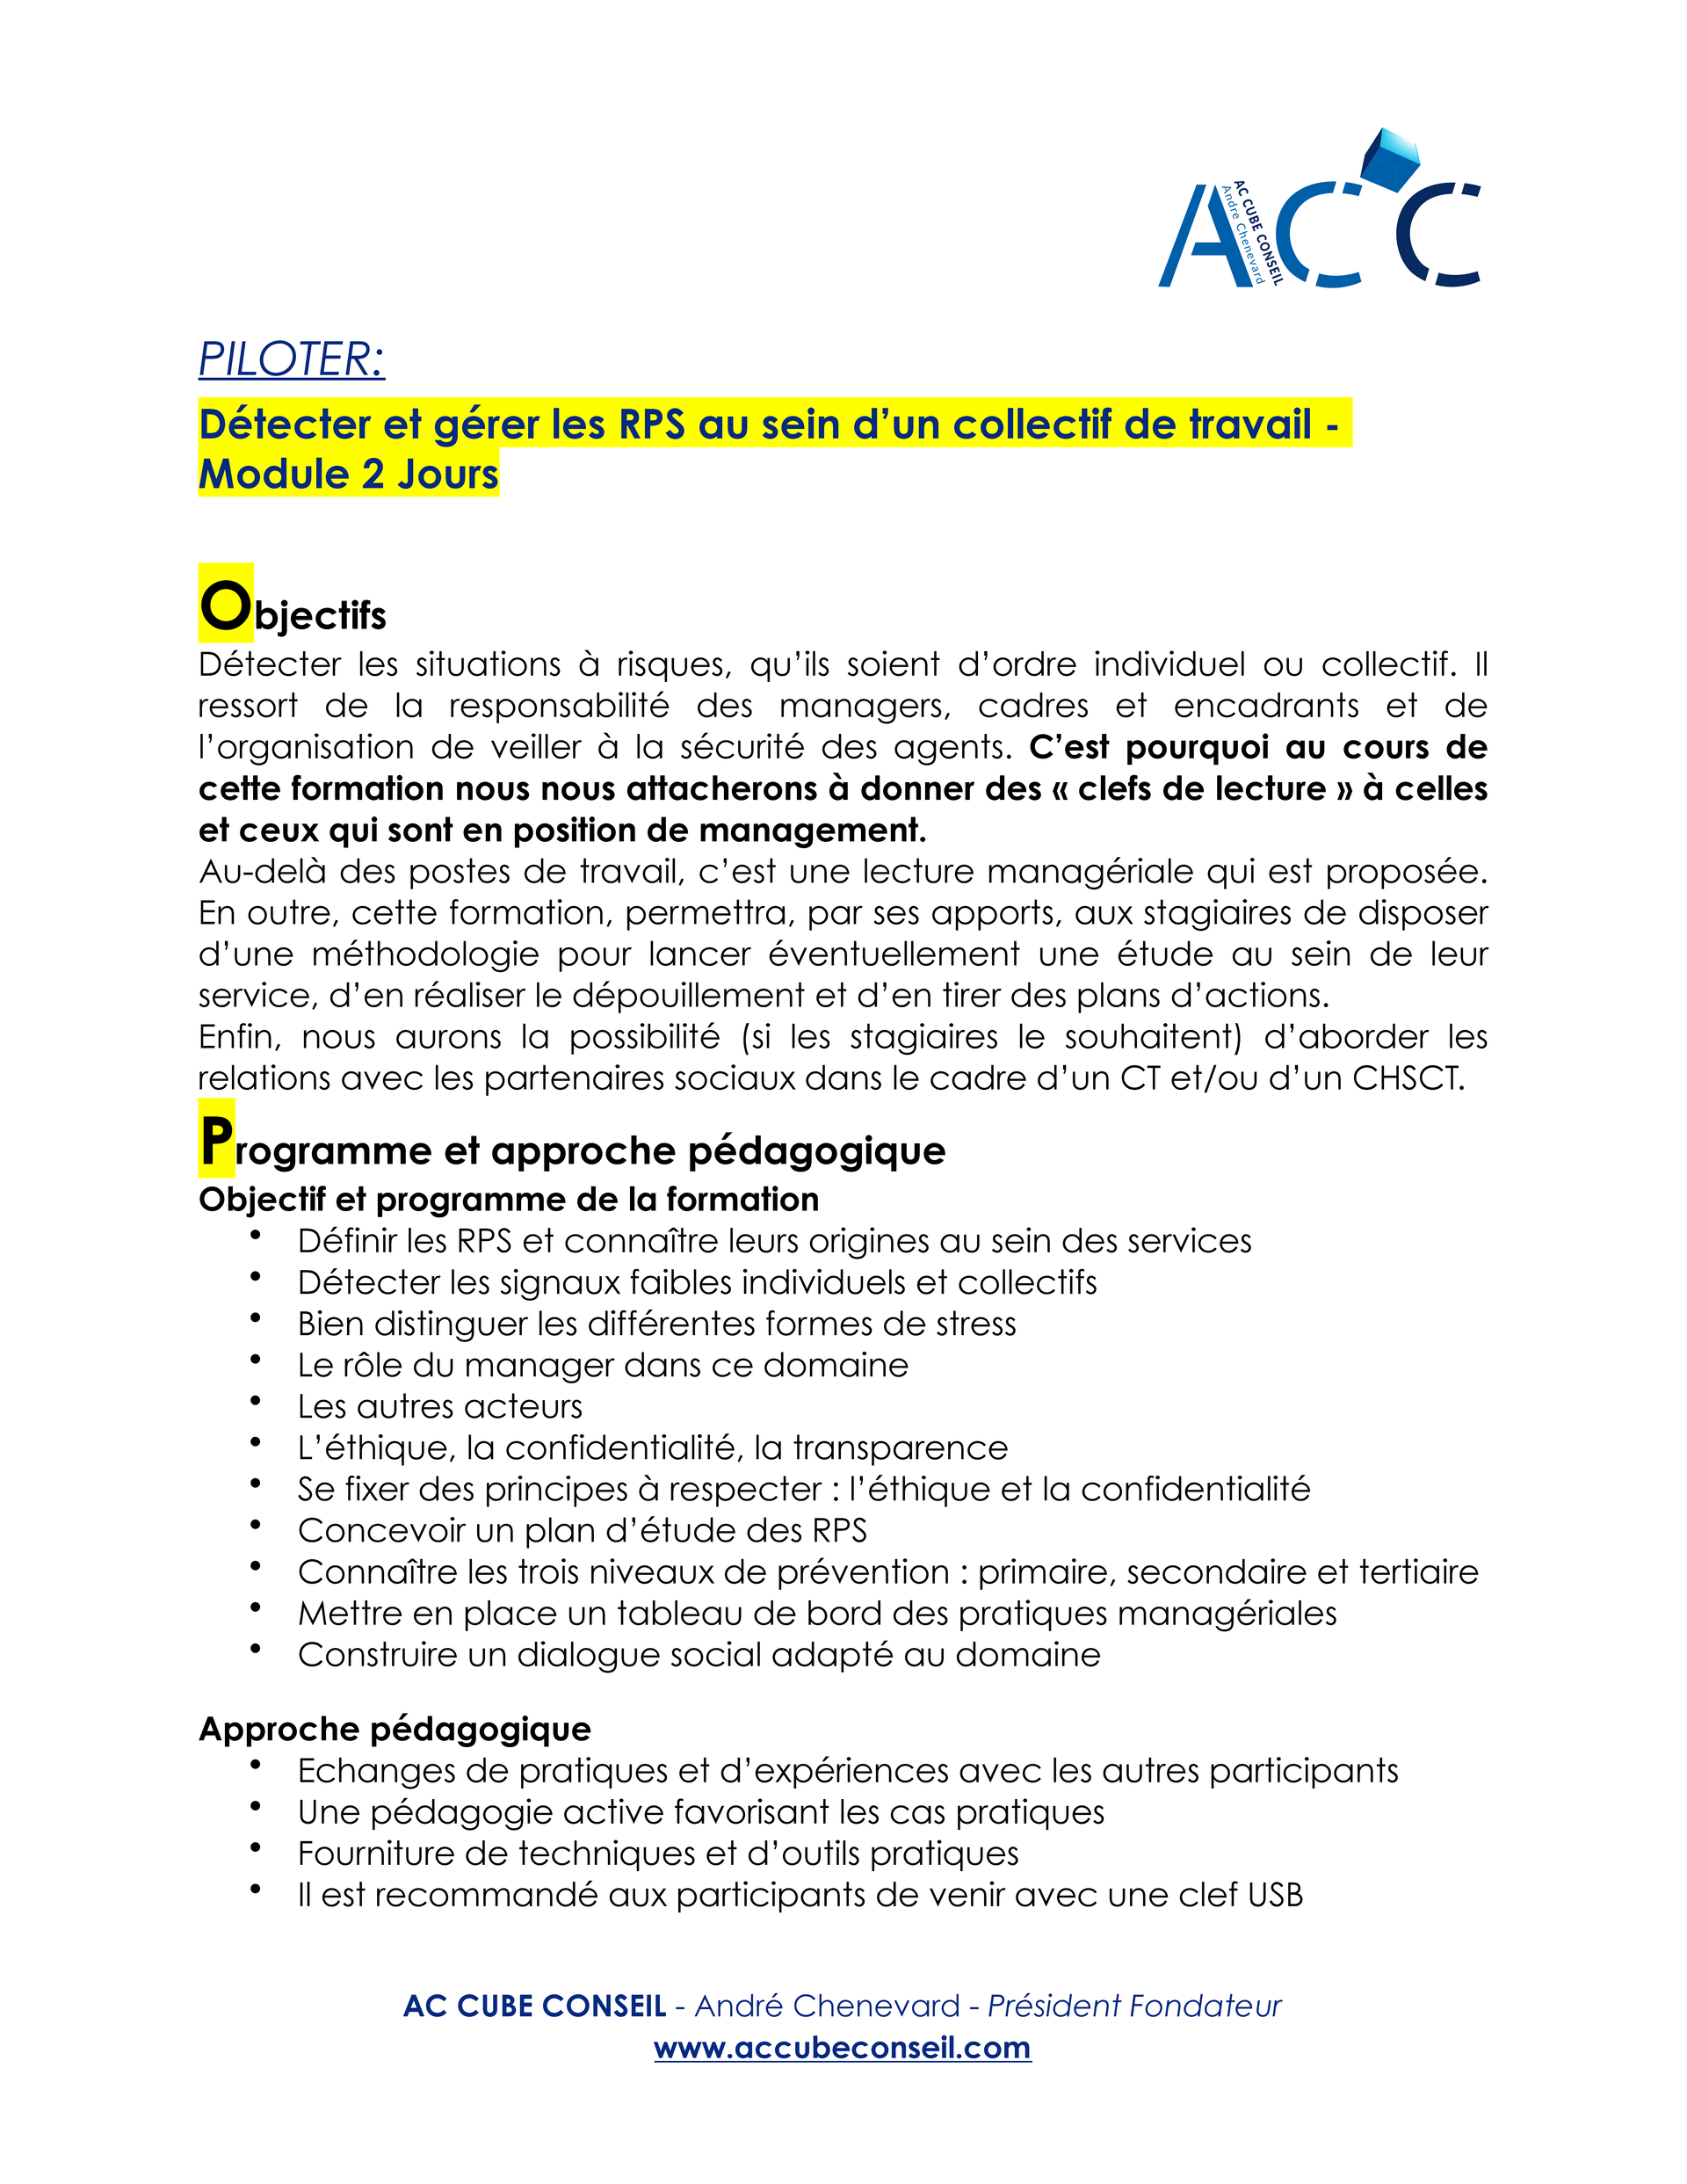 AC CUBE CONSEIL - PILOTER_Page_3.png